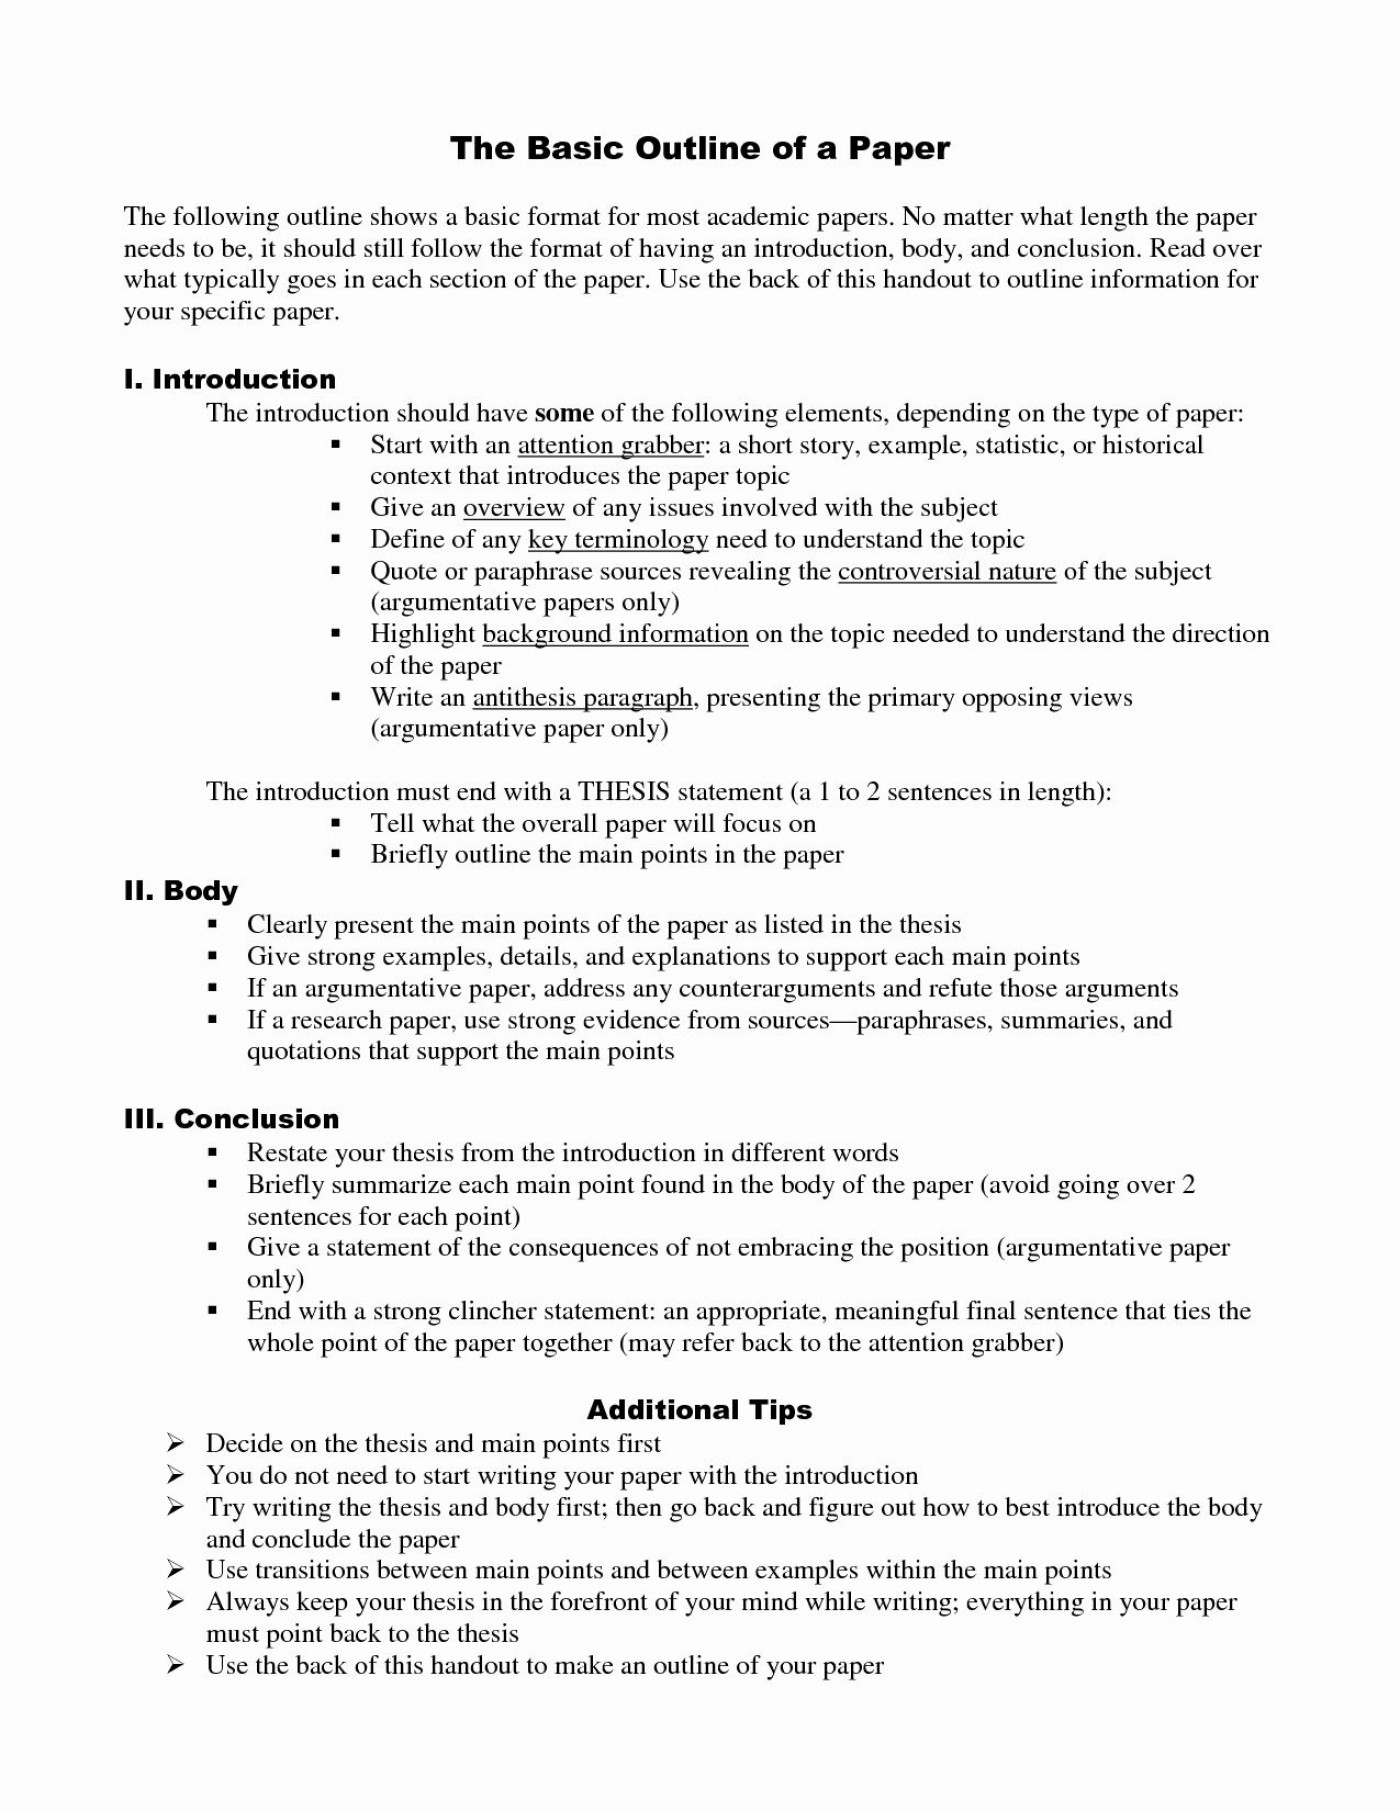 002 Post Traumatic Stress Disorder Research Paper Outline Argumentative Essay On Wondrous Topics 1400